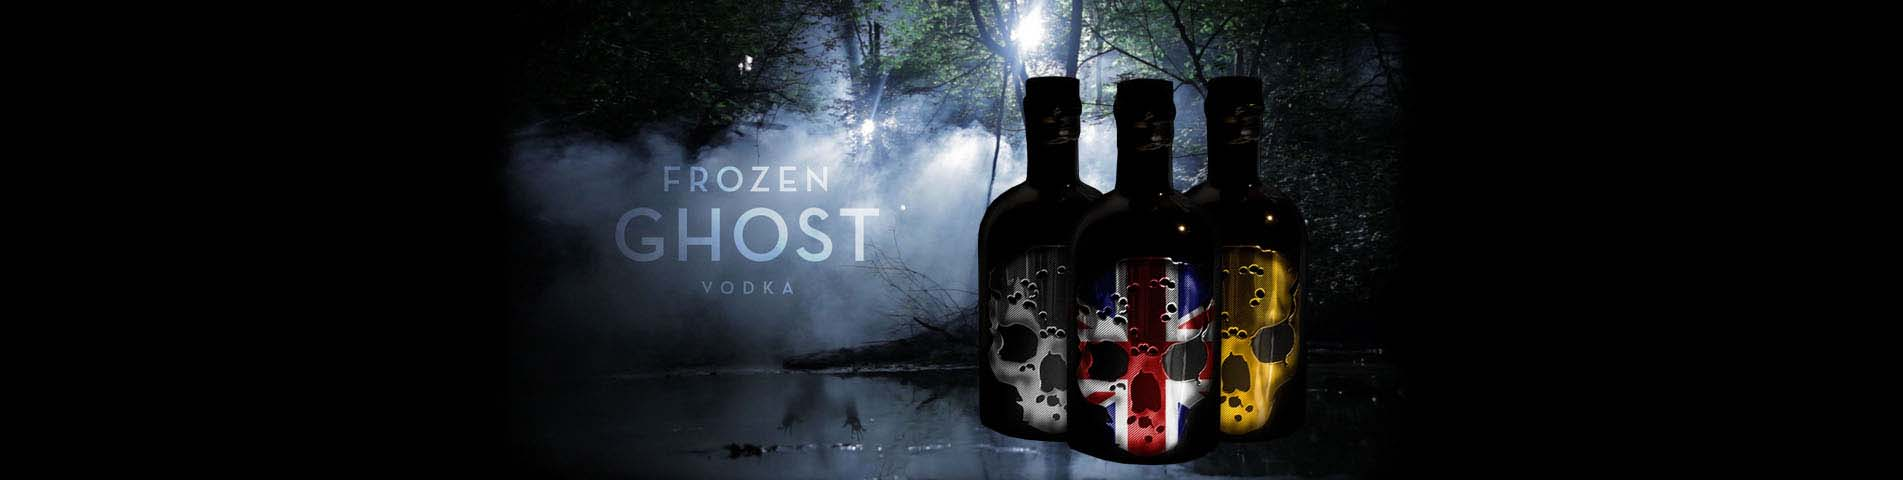 Frozen-Ghost-Vodka-3